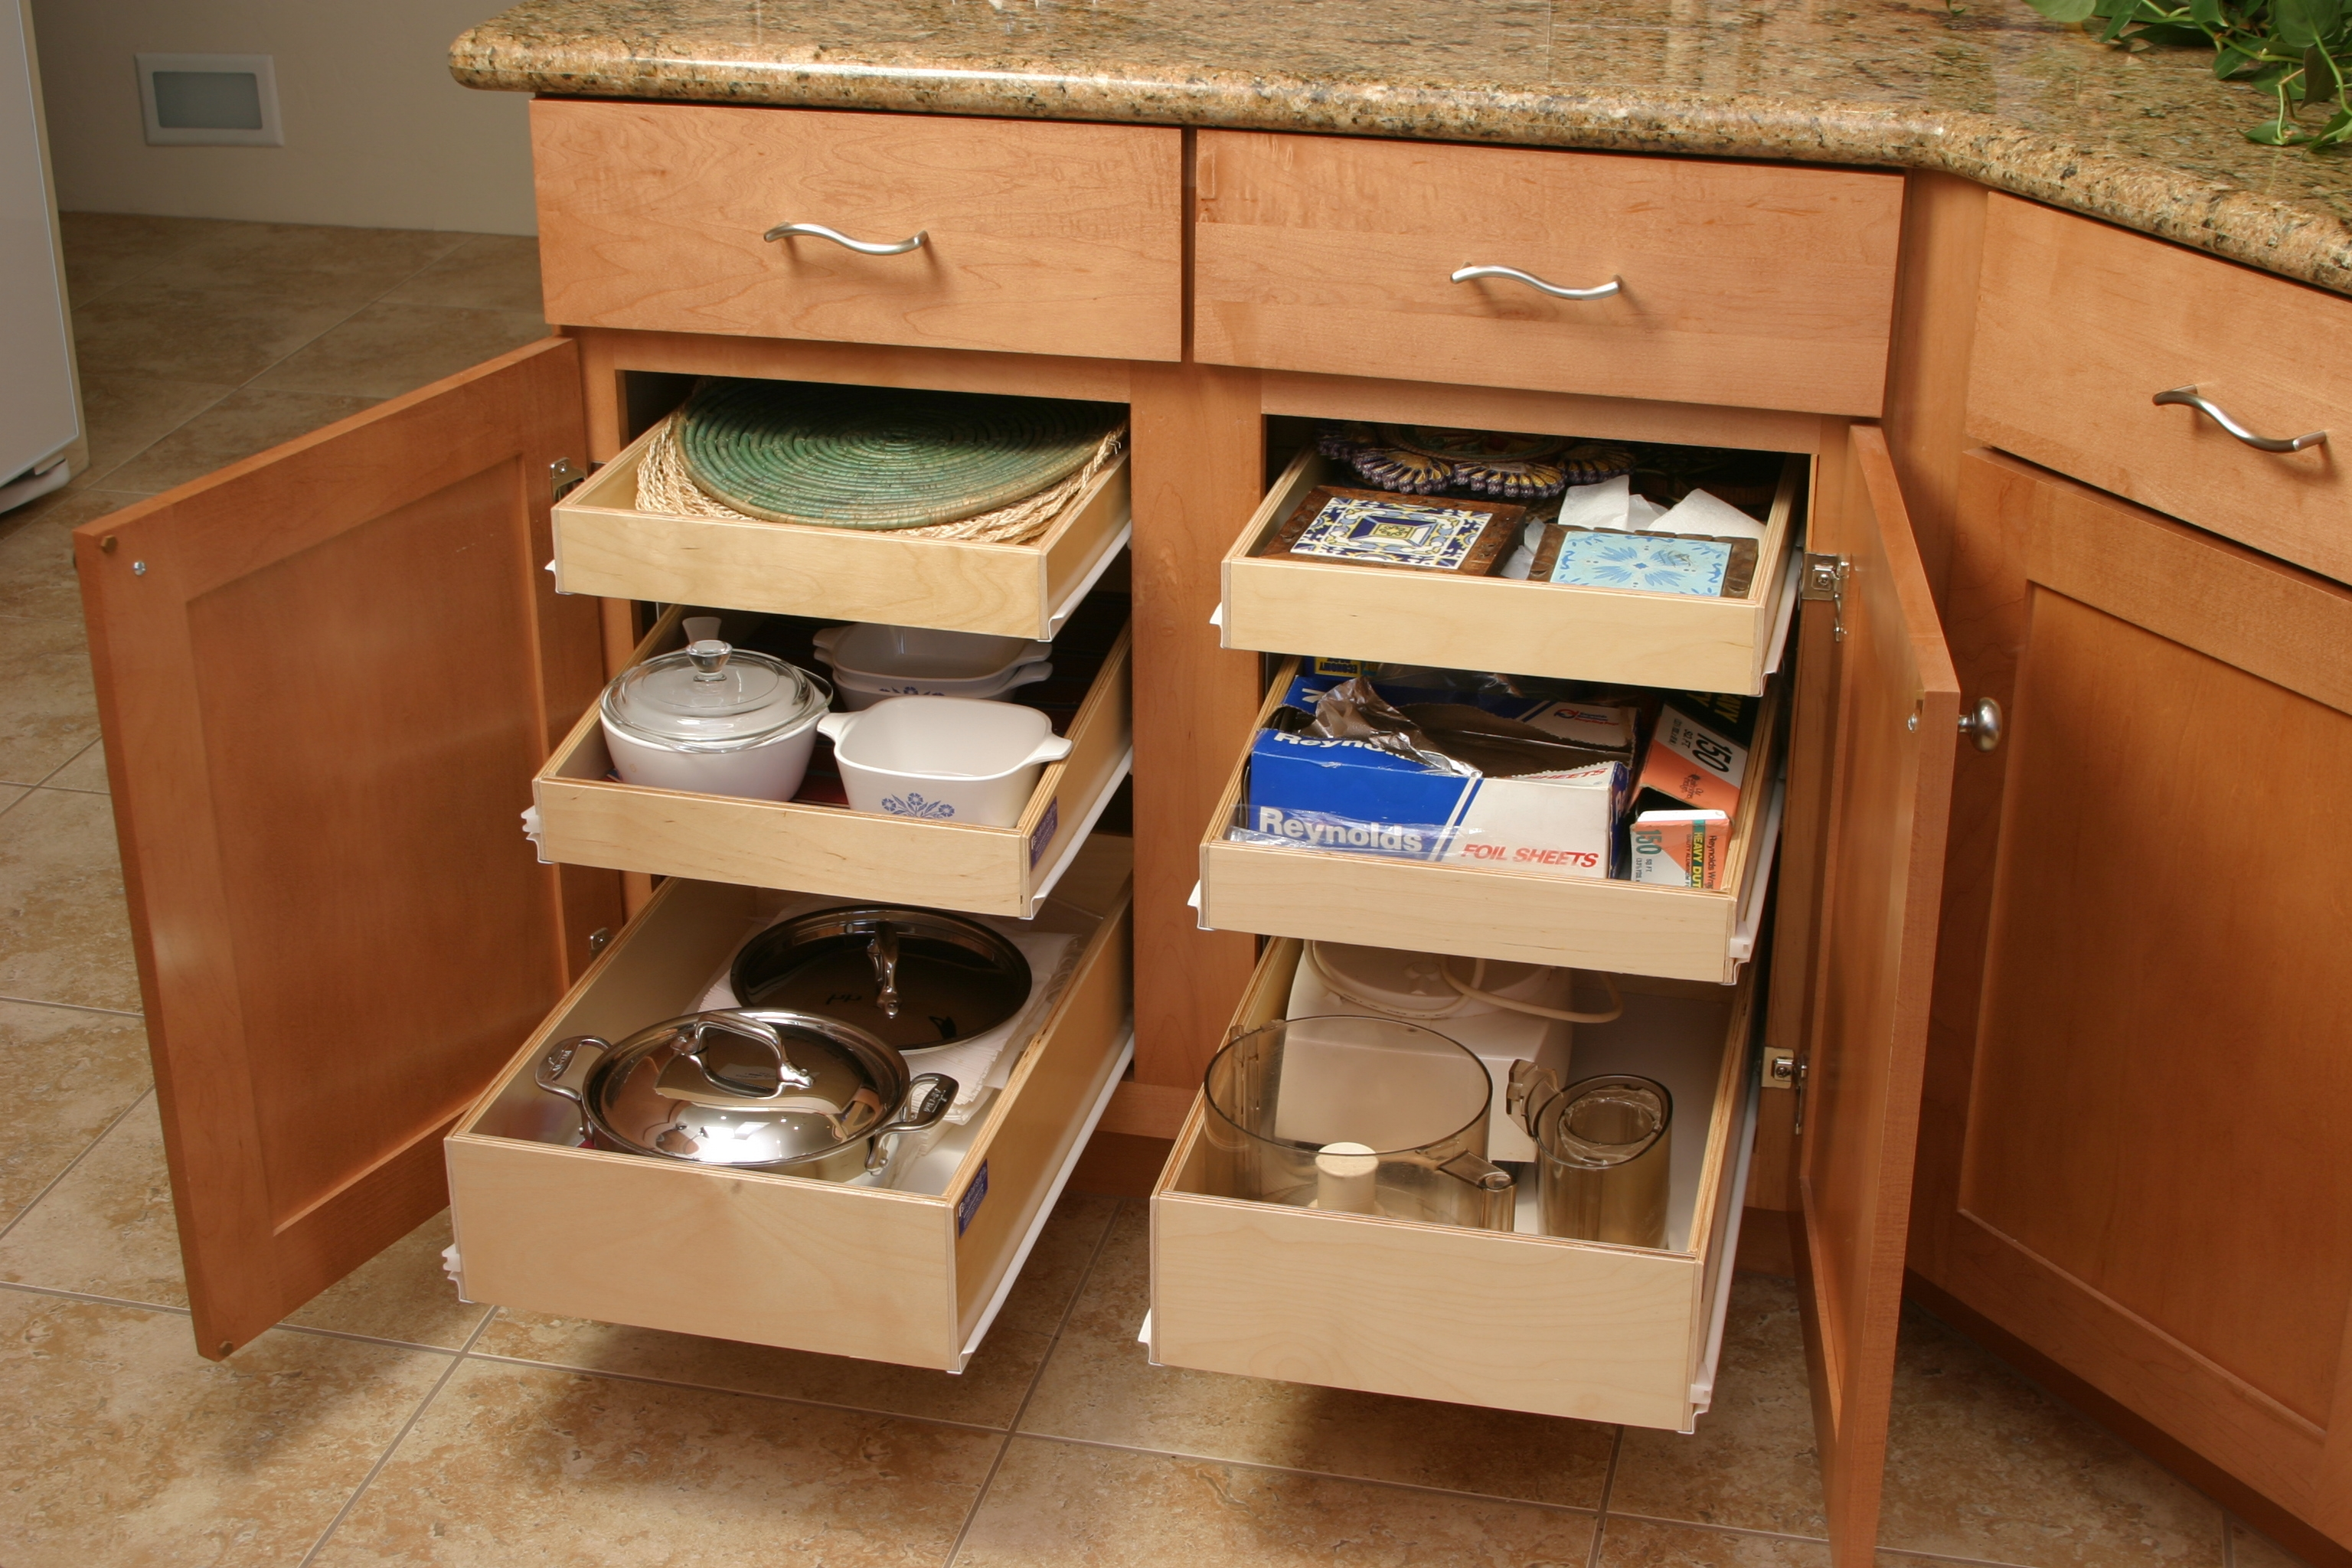 Base Cabinet Storage Drawerscabinet pull out winters texas